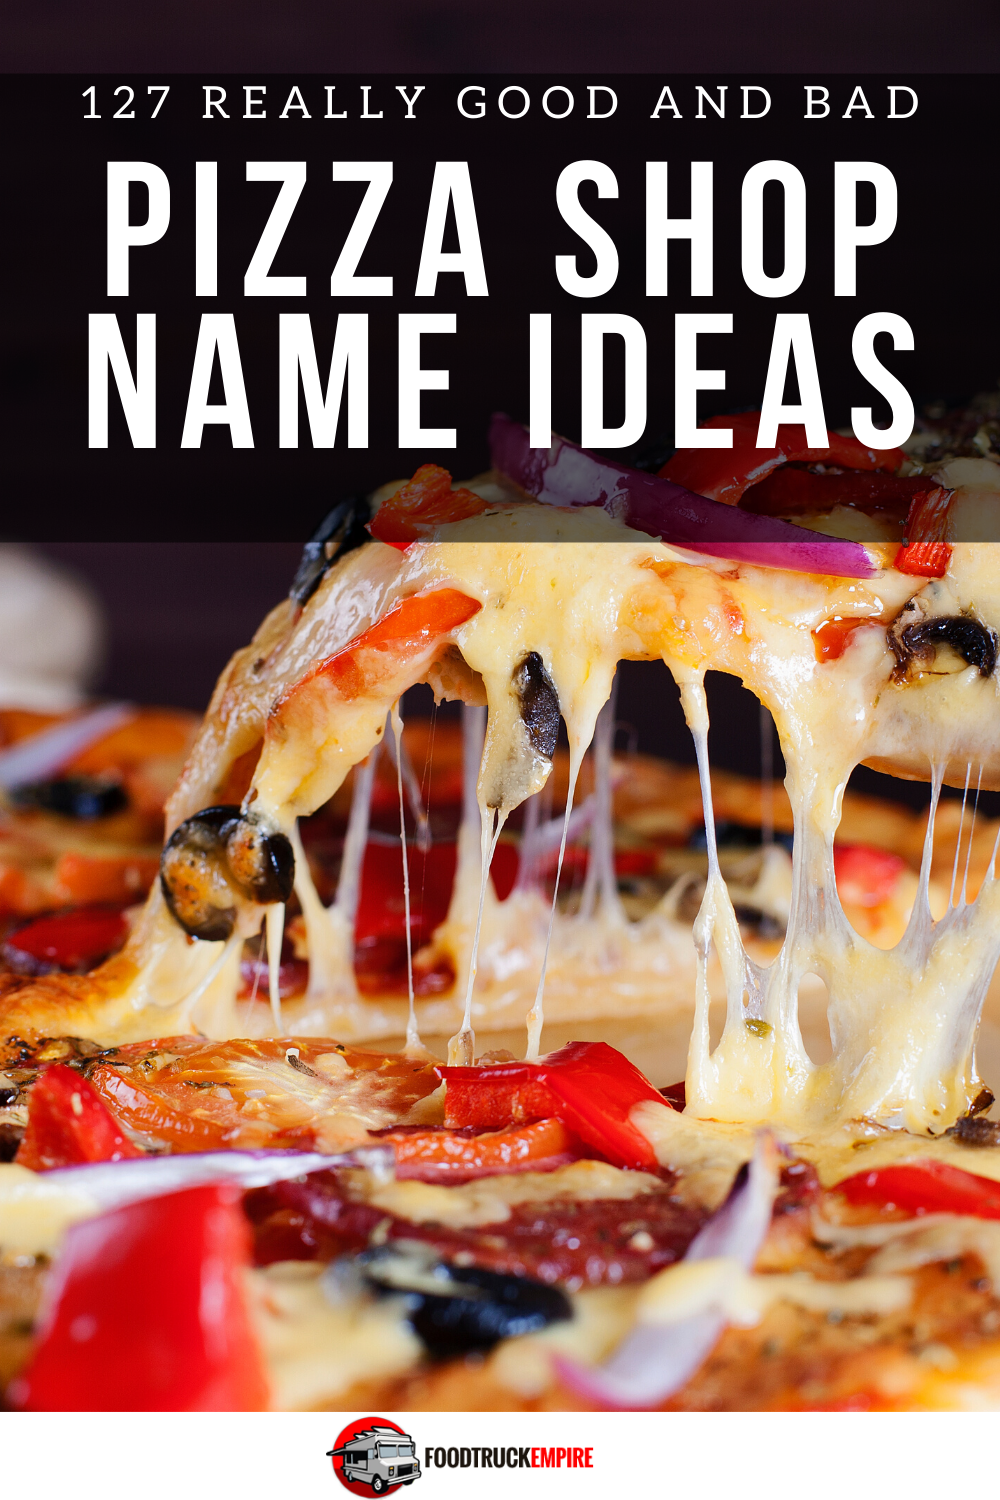 127 Really Good and Bad Pizza Shop Name Ideas